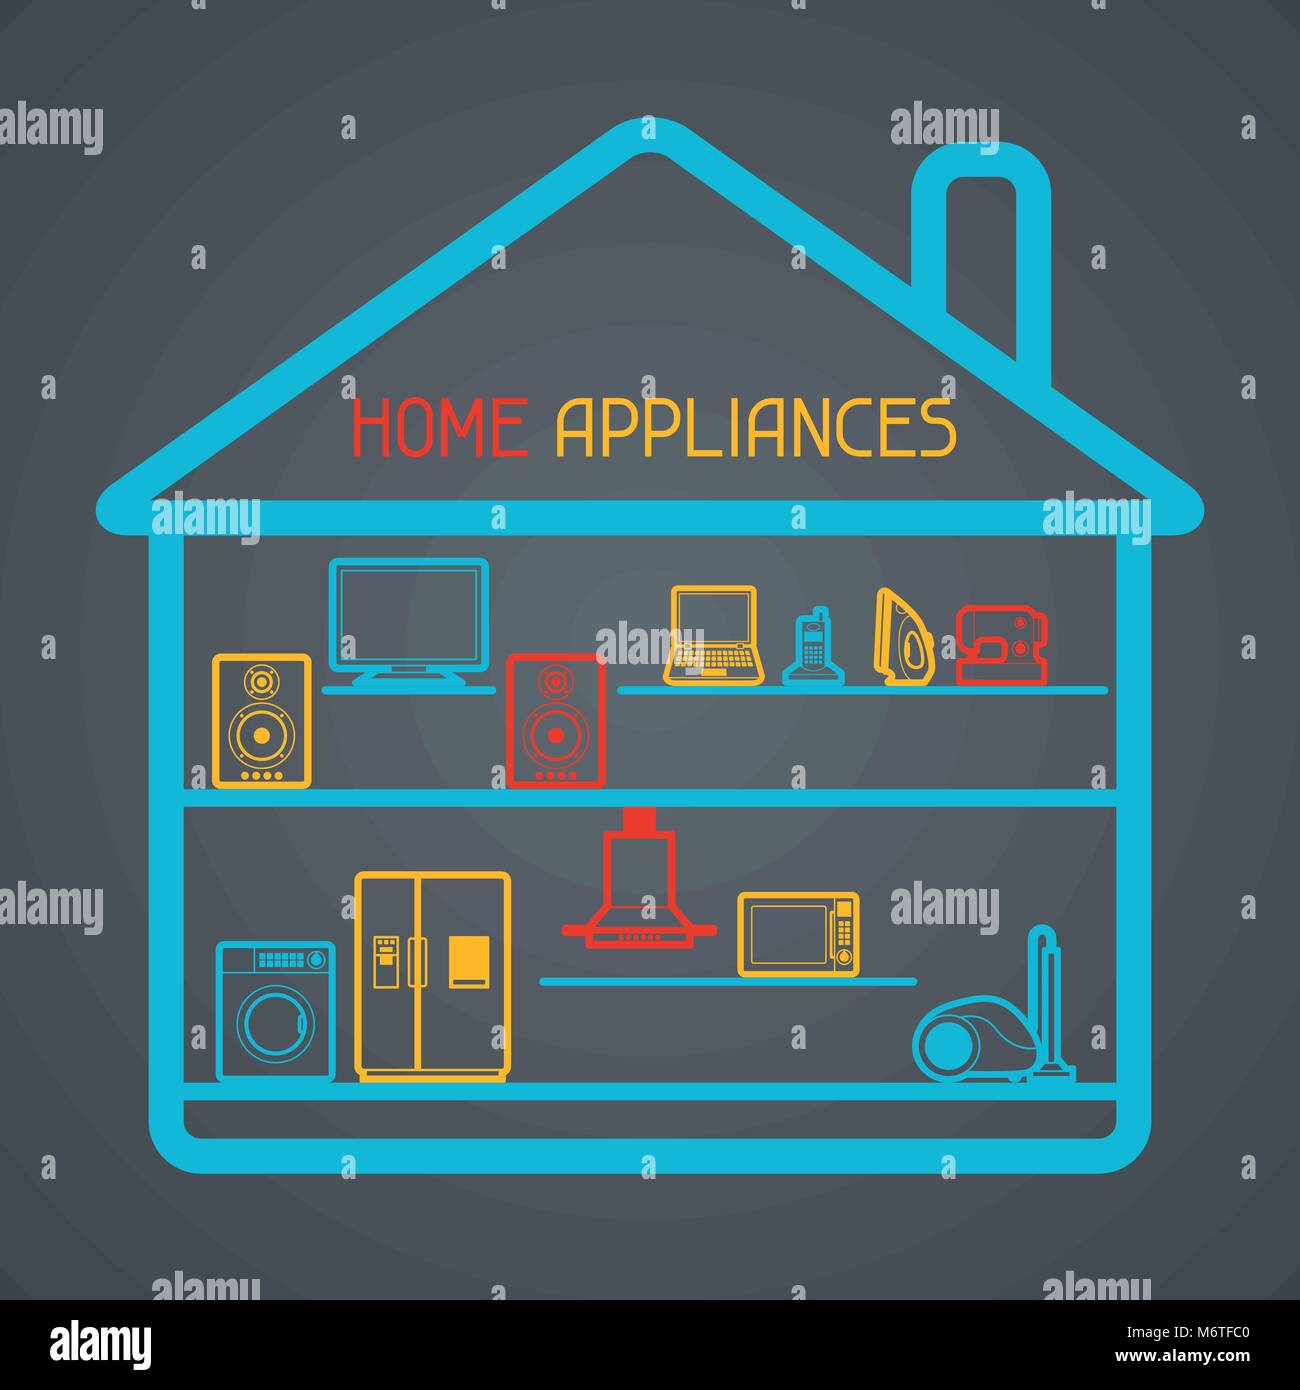 Home appliances and electronics background - Stock Image